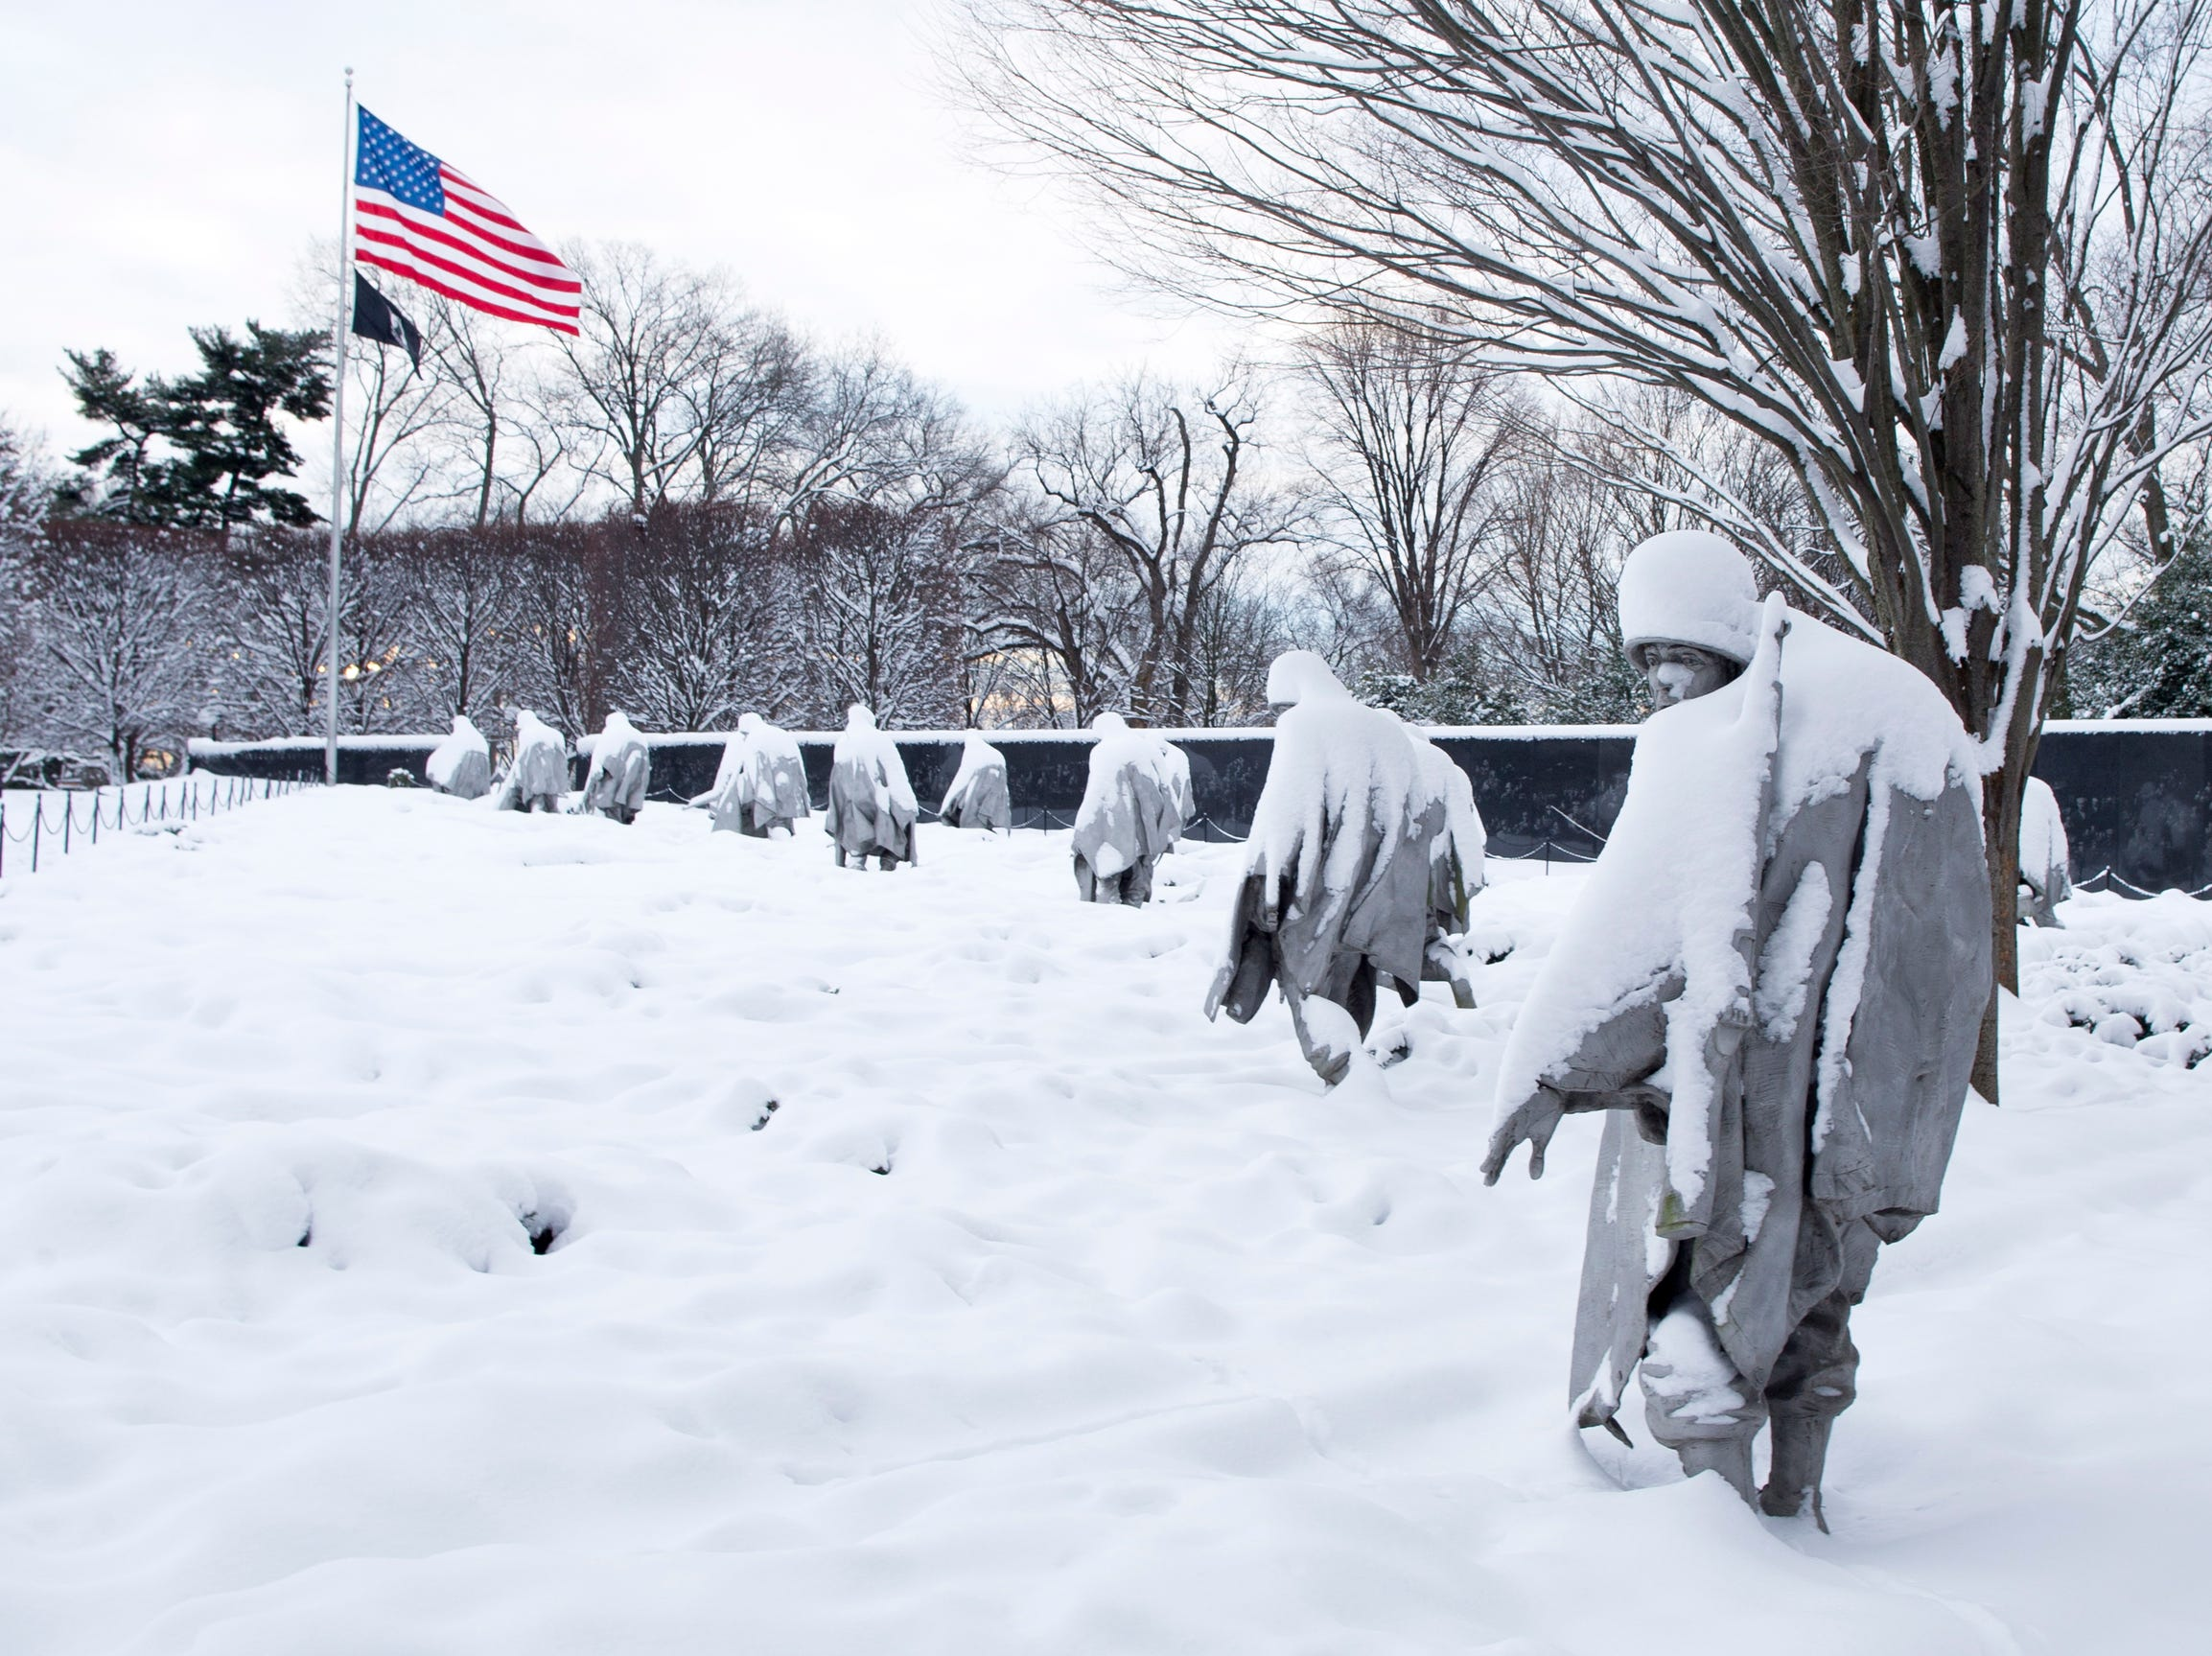 Statues at the Korean War Veterans Memorial are covered in snow in Washington, DC, on Monday.  Federal offices and schools in the nation's capital are closed following a snowstorm this weekend that left an estimated accumulation of 8 to 12 inches of snow in the area. Despite the shutdown of the federal government, the National Park Service announced it would clear snow.  Almost three hundred miles of roads and over one hundred miles of sidewalks in the greater Washington DC area fall under the jurisdiction of the National Park Service.